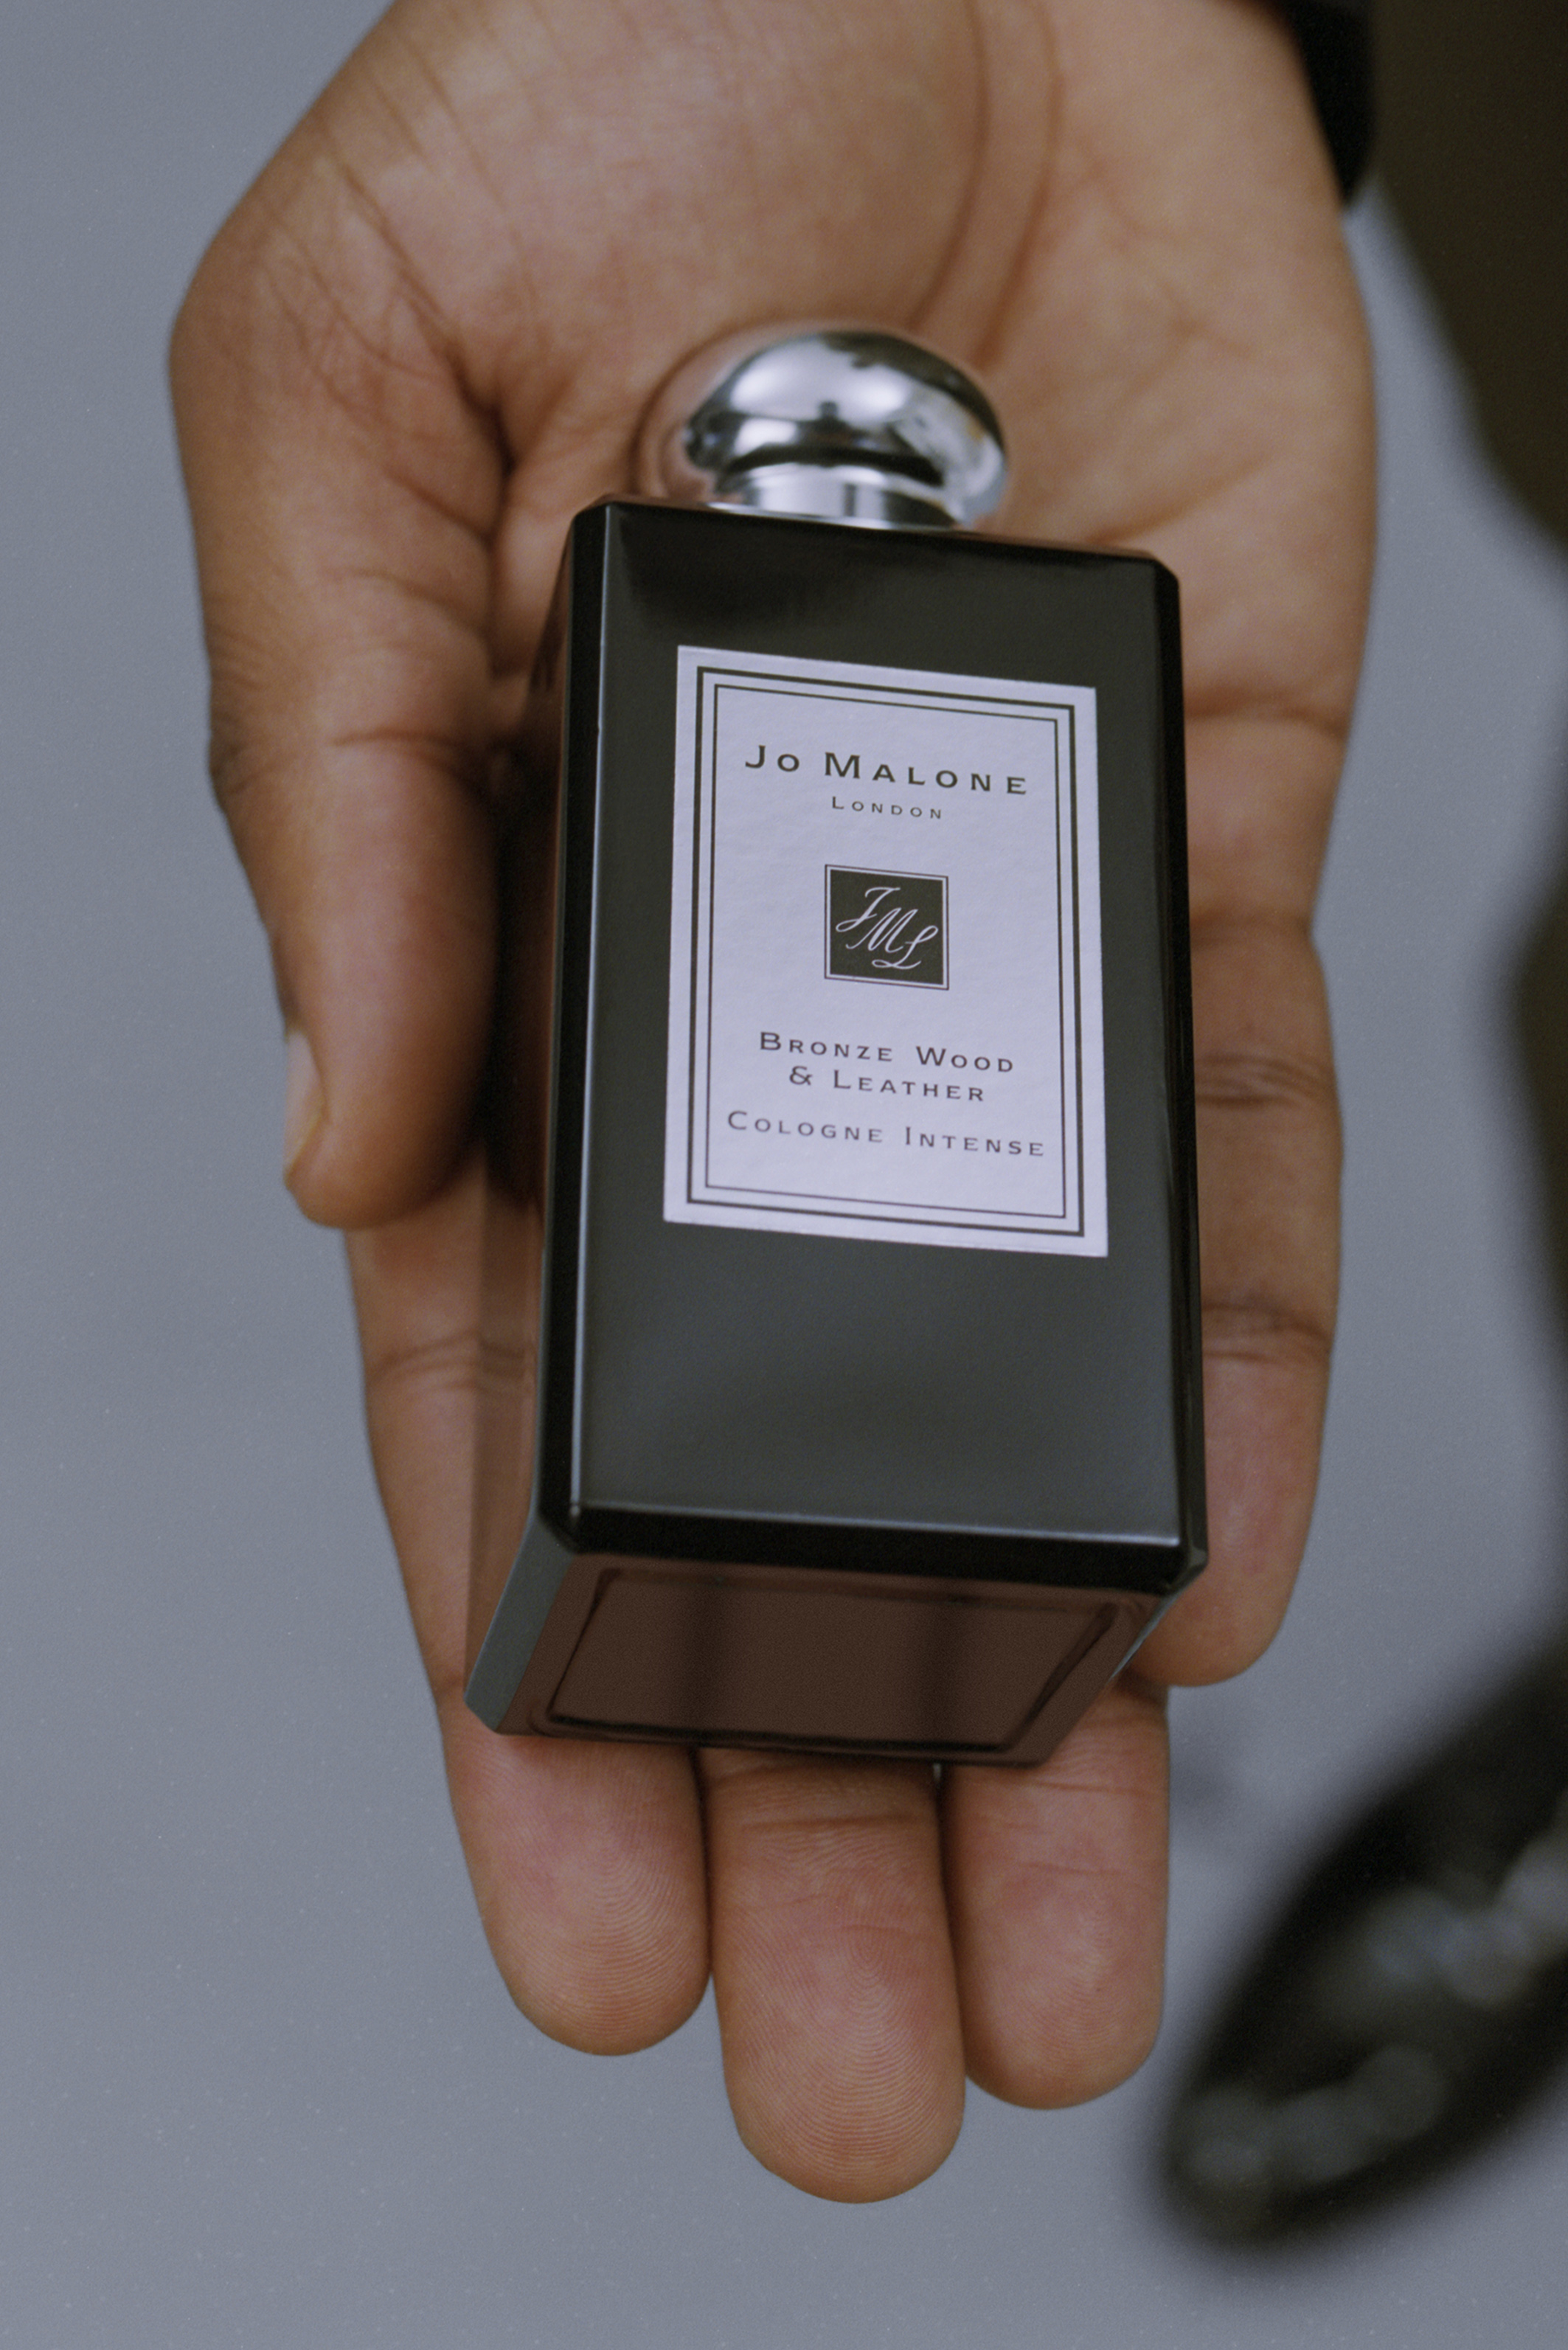 Jo Malone London - The Gent Bottle Portrait.jpg